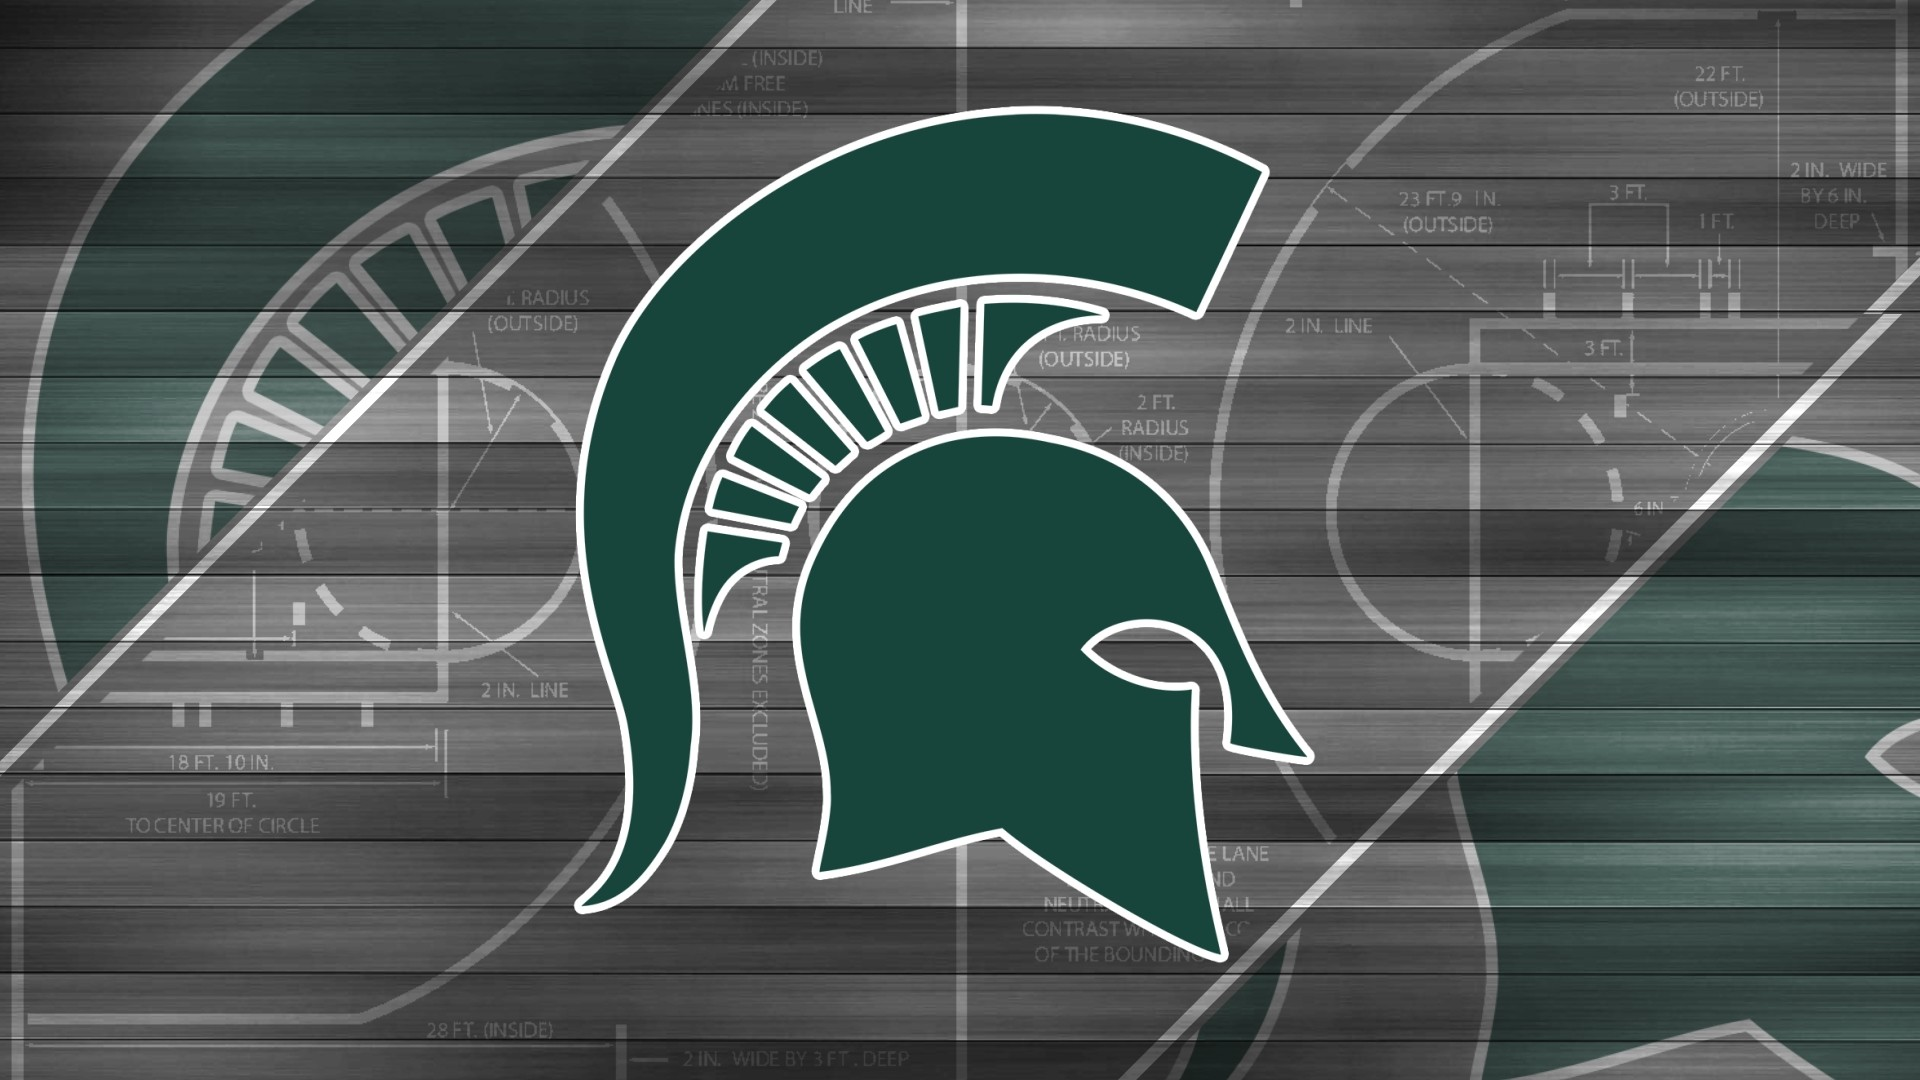 Res: 1920x1080, Title : hd michigan state wallpapers – wallpaper.wiki. Dimension : 1920 x  1080. File Type : JPG/JPEG